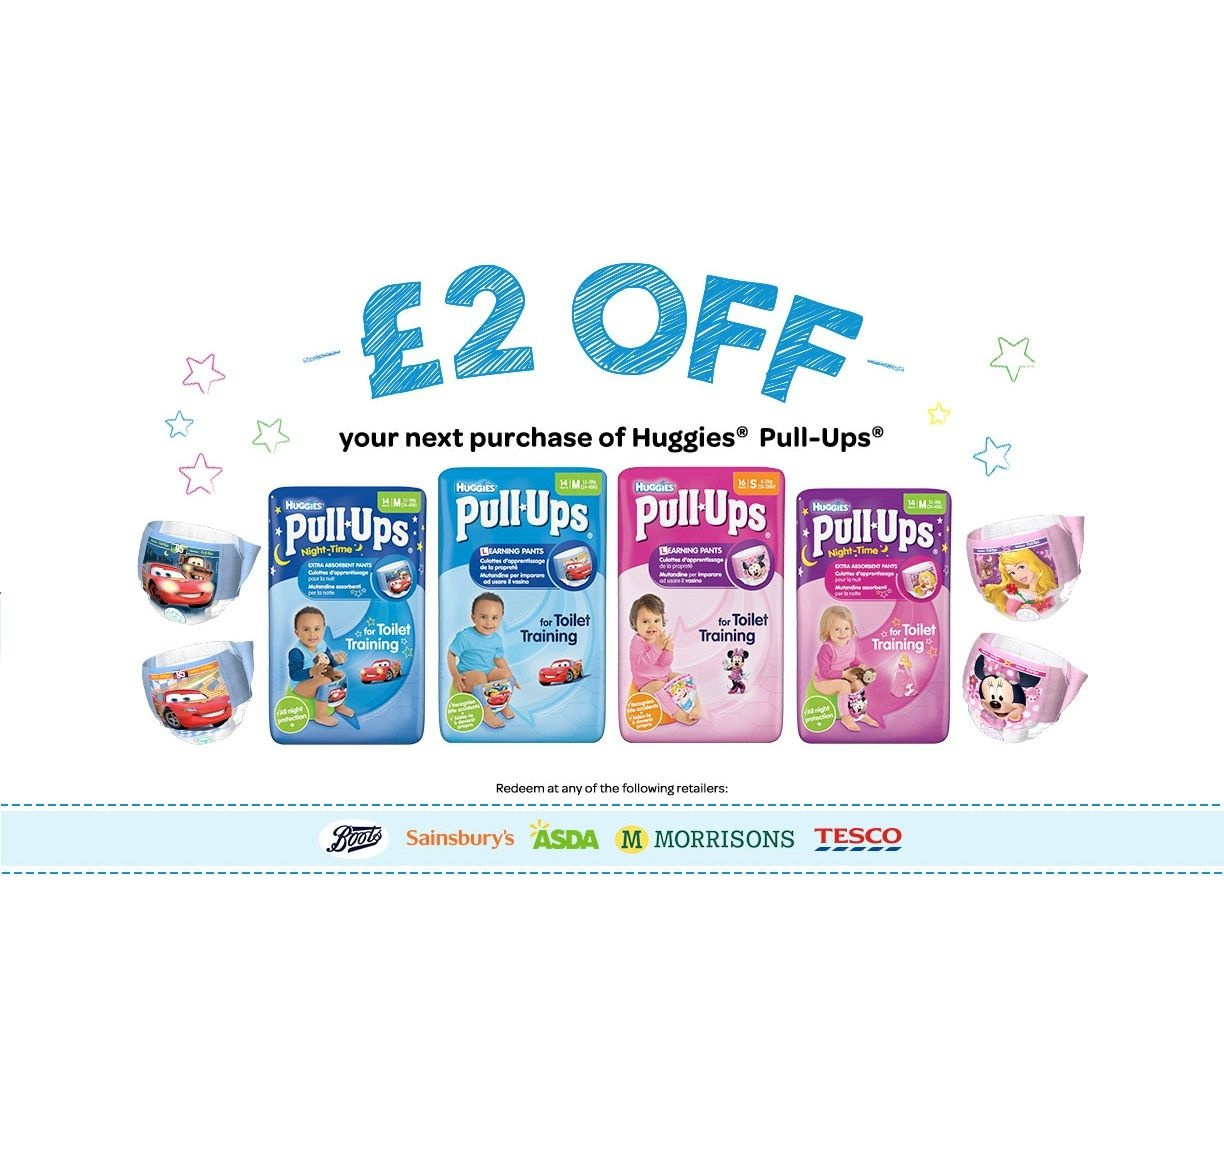 Voucher Code £2 Off Huggies Pull Ups   Freebies Of The Day Uk - Free Printable Coupons For Huggies Pull Ups